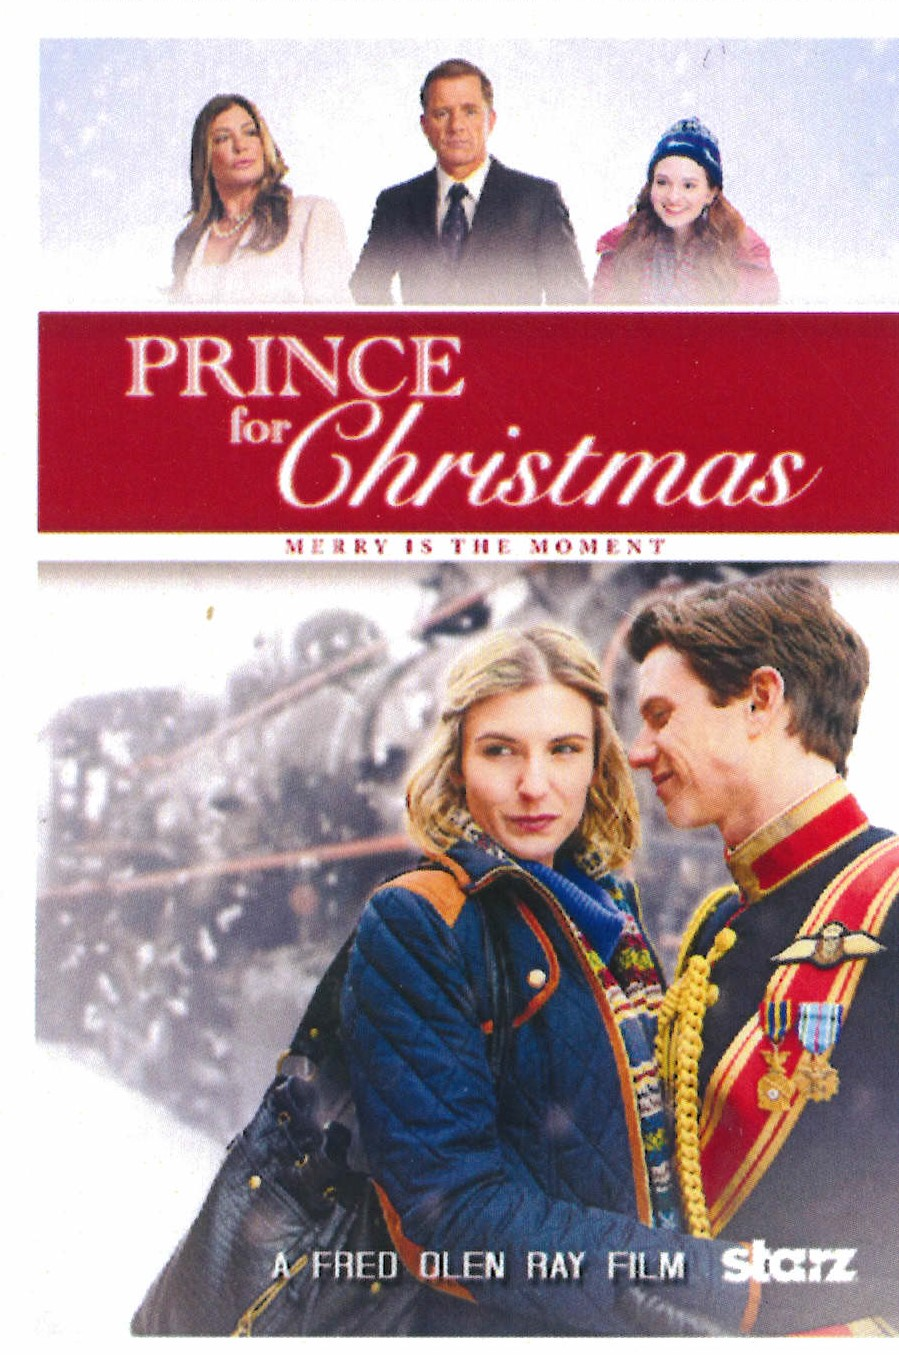 A Prince for Christmas & other east aurora centered movies.